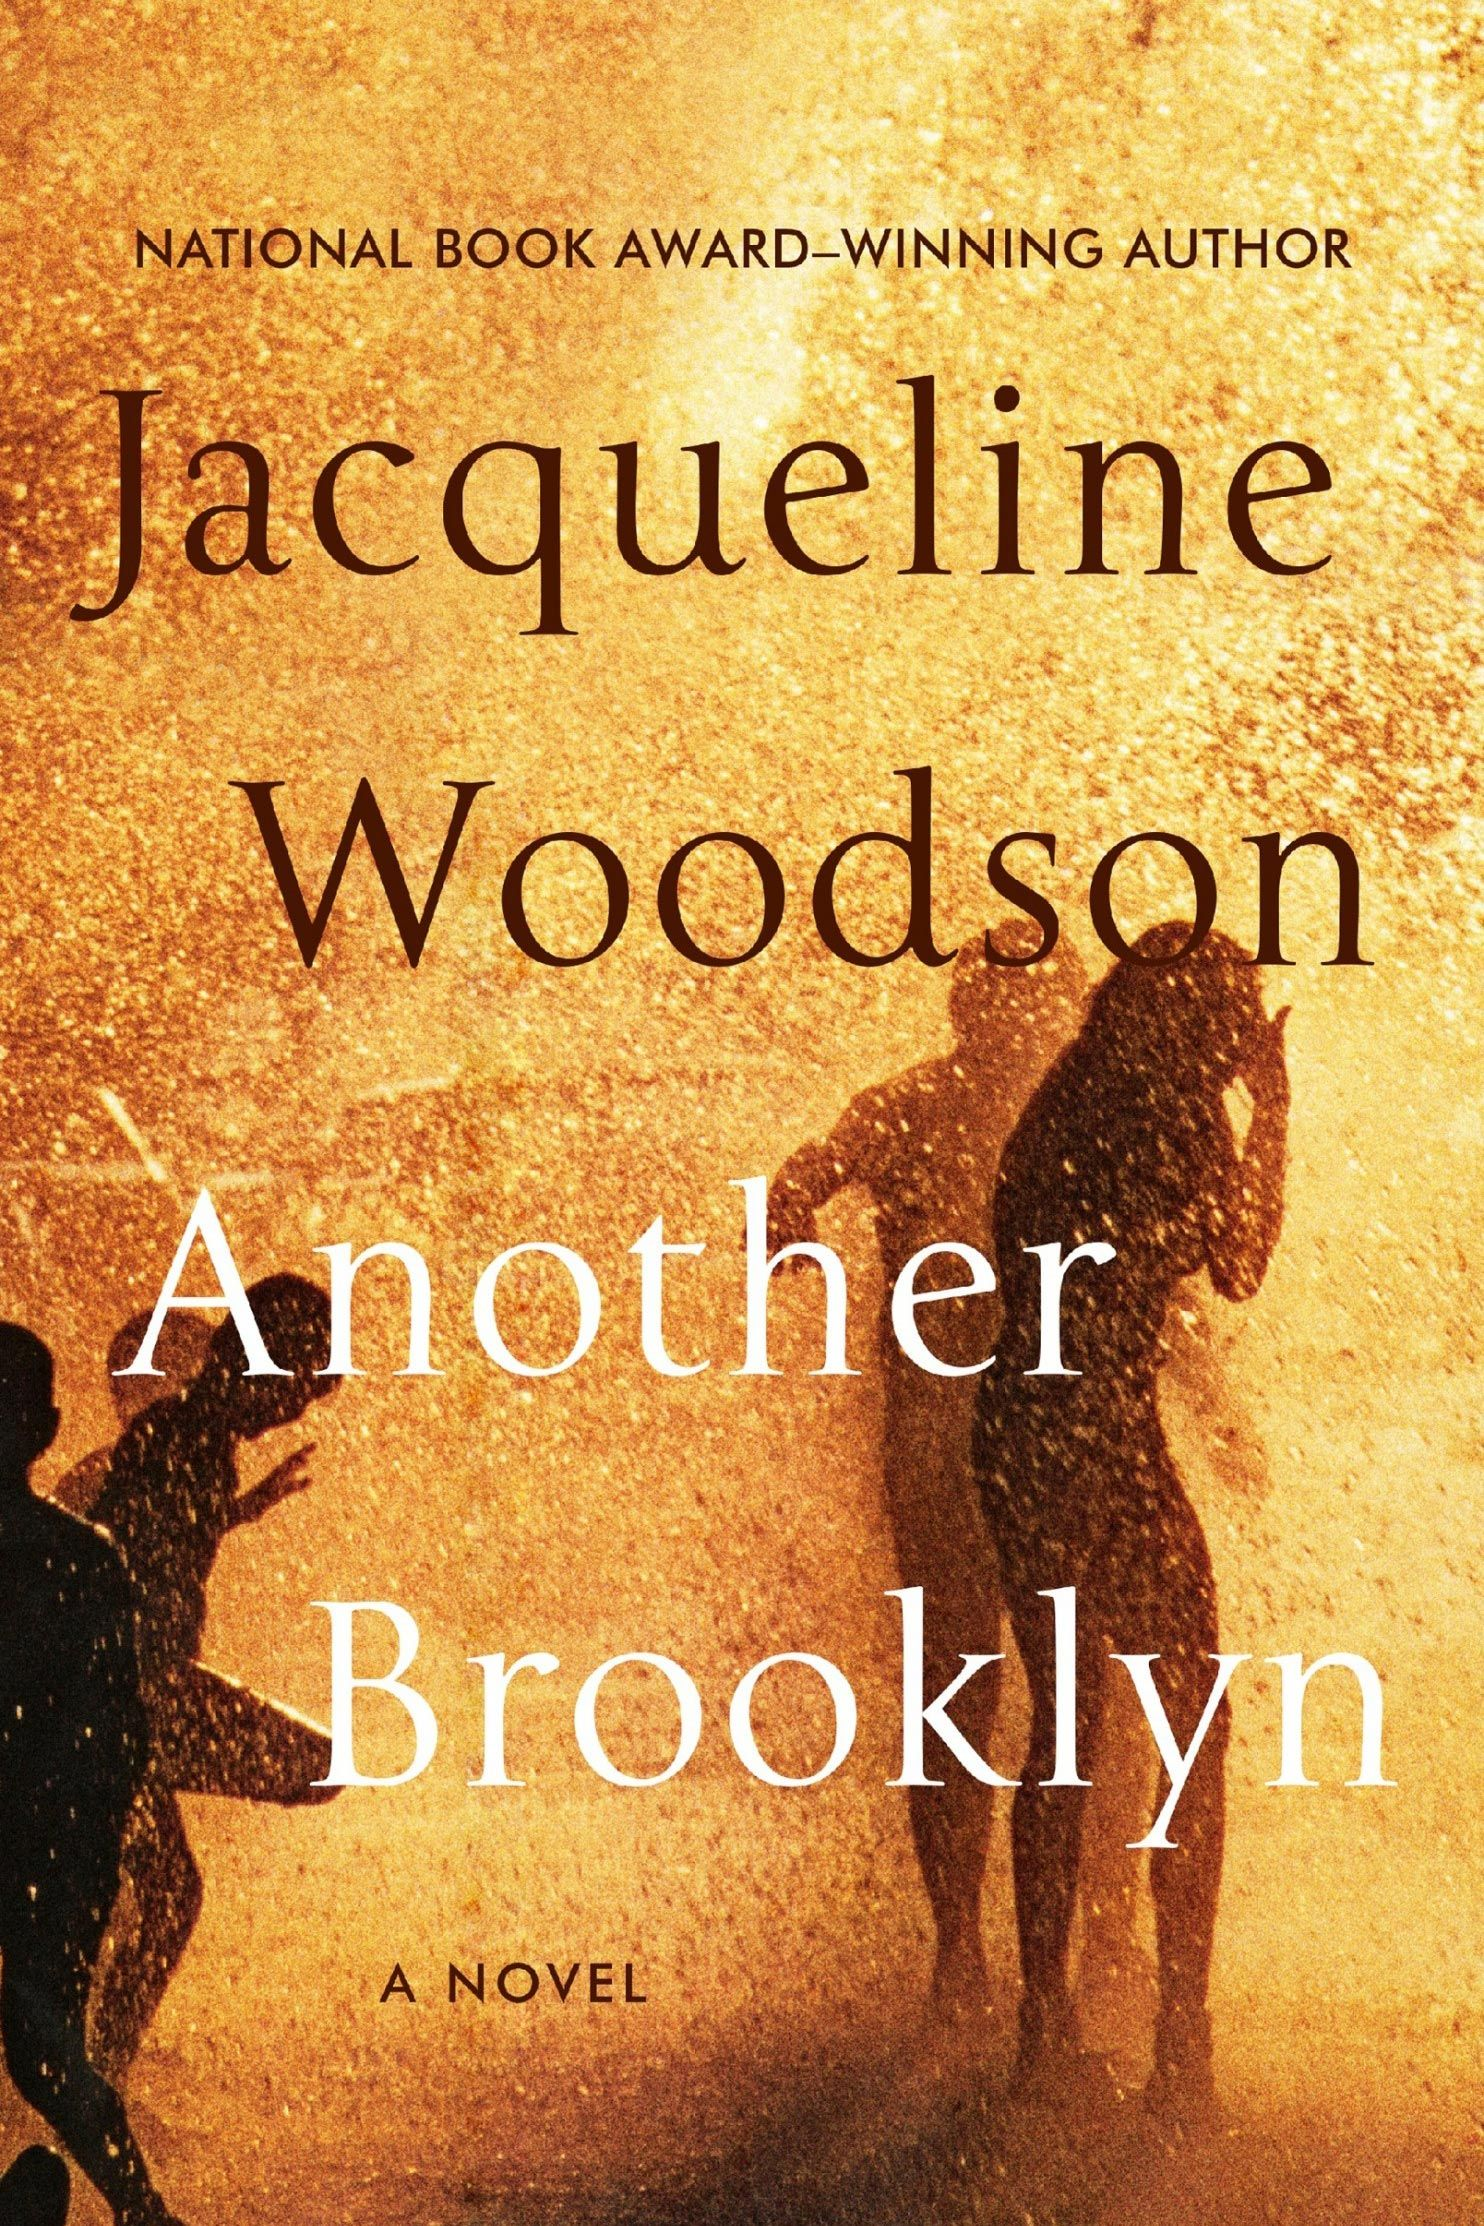 "<p>August remembers when Brooklyn was a place where she and her girls wandered the streets, believing that the future belonged to them. But there was another side to Brooklyn, a much darker one. Woodson's latest paints an exquisite picture of the hopes and risks associated with growing up.</p><p><strong data-redactor-tag=""strong"" data-verified=""redactor"">Why you'll love it: </strong><em data-redactor-tag=""em"" data-verified=""redactor"">Another Brooklyn</em> flawlessly examines the transition from youth to adulthood.&nbsp&#x3B;</p><p><a href=""https://www.amazon.com/Another-Brooklyn-Thorndike-African-American/dp/1410494608/ref=tmm_hrd_swatch_0?_encoding=UTF8&amp&#x3B;qid=1481655028&amp&#x3B;sr=1-1&amp&#x3B;tag=redbook_auto-append-20"" target=""_blank"" class=""slide-buy--button"" data-tracking-id=""recirc-text-link"">BUY NOW</a>